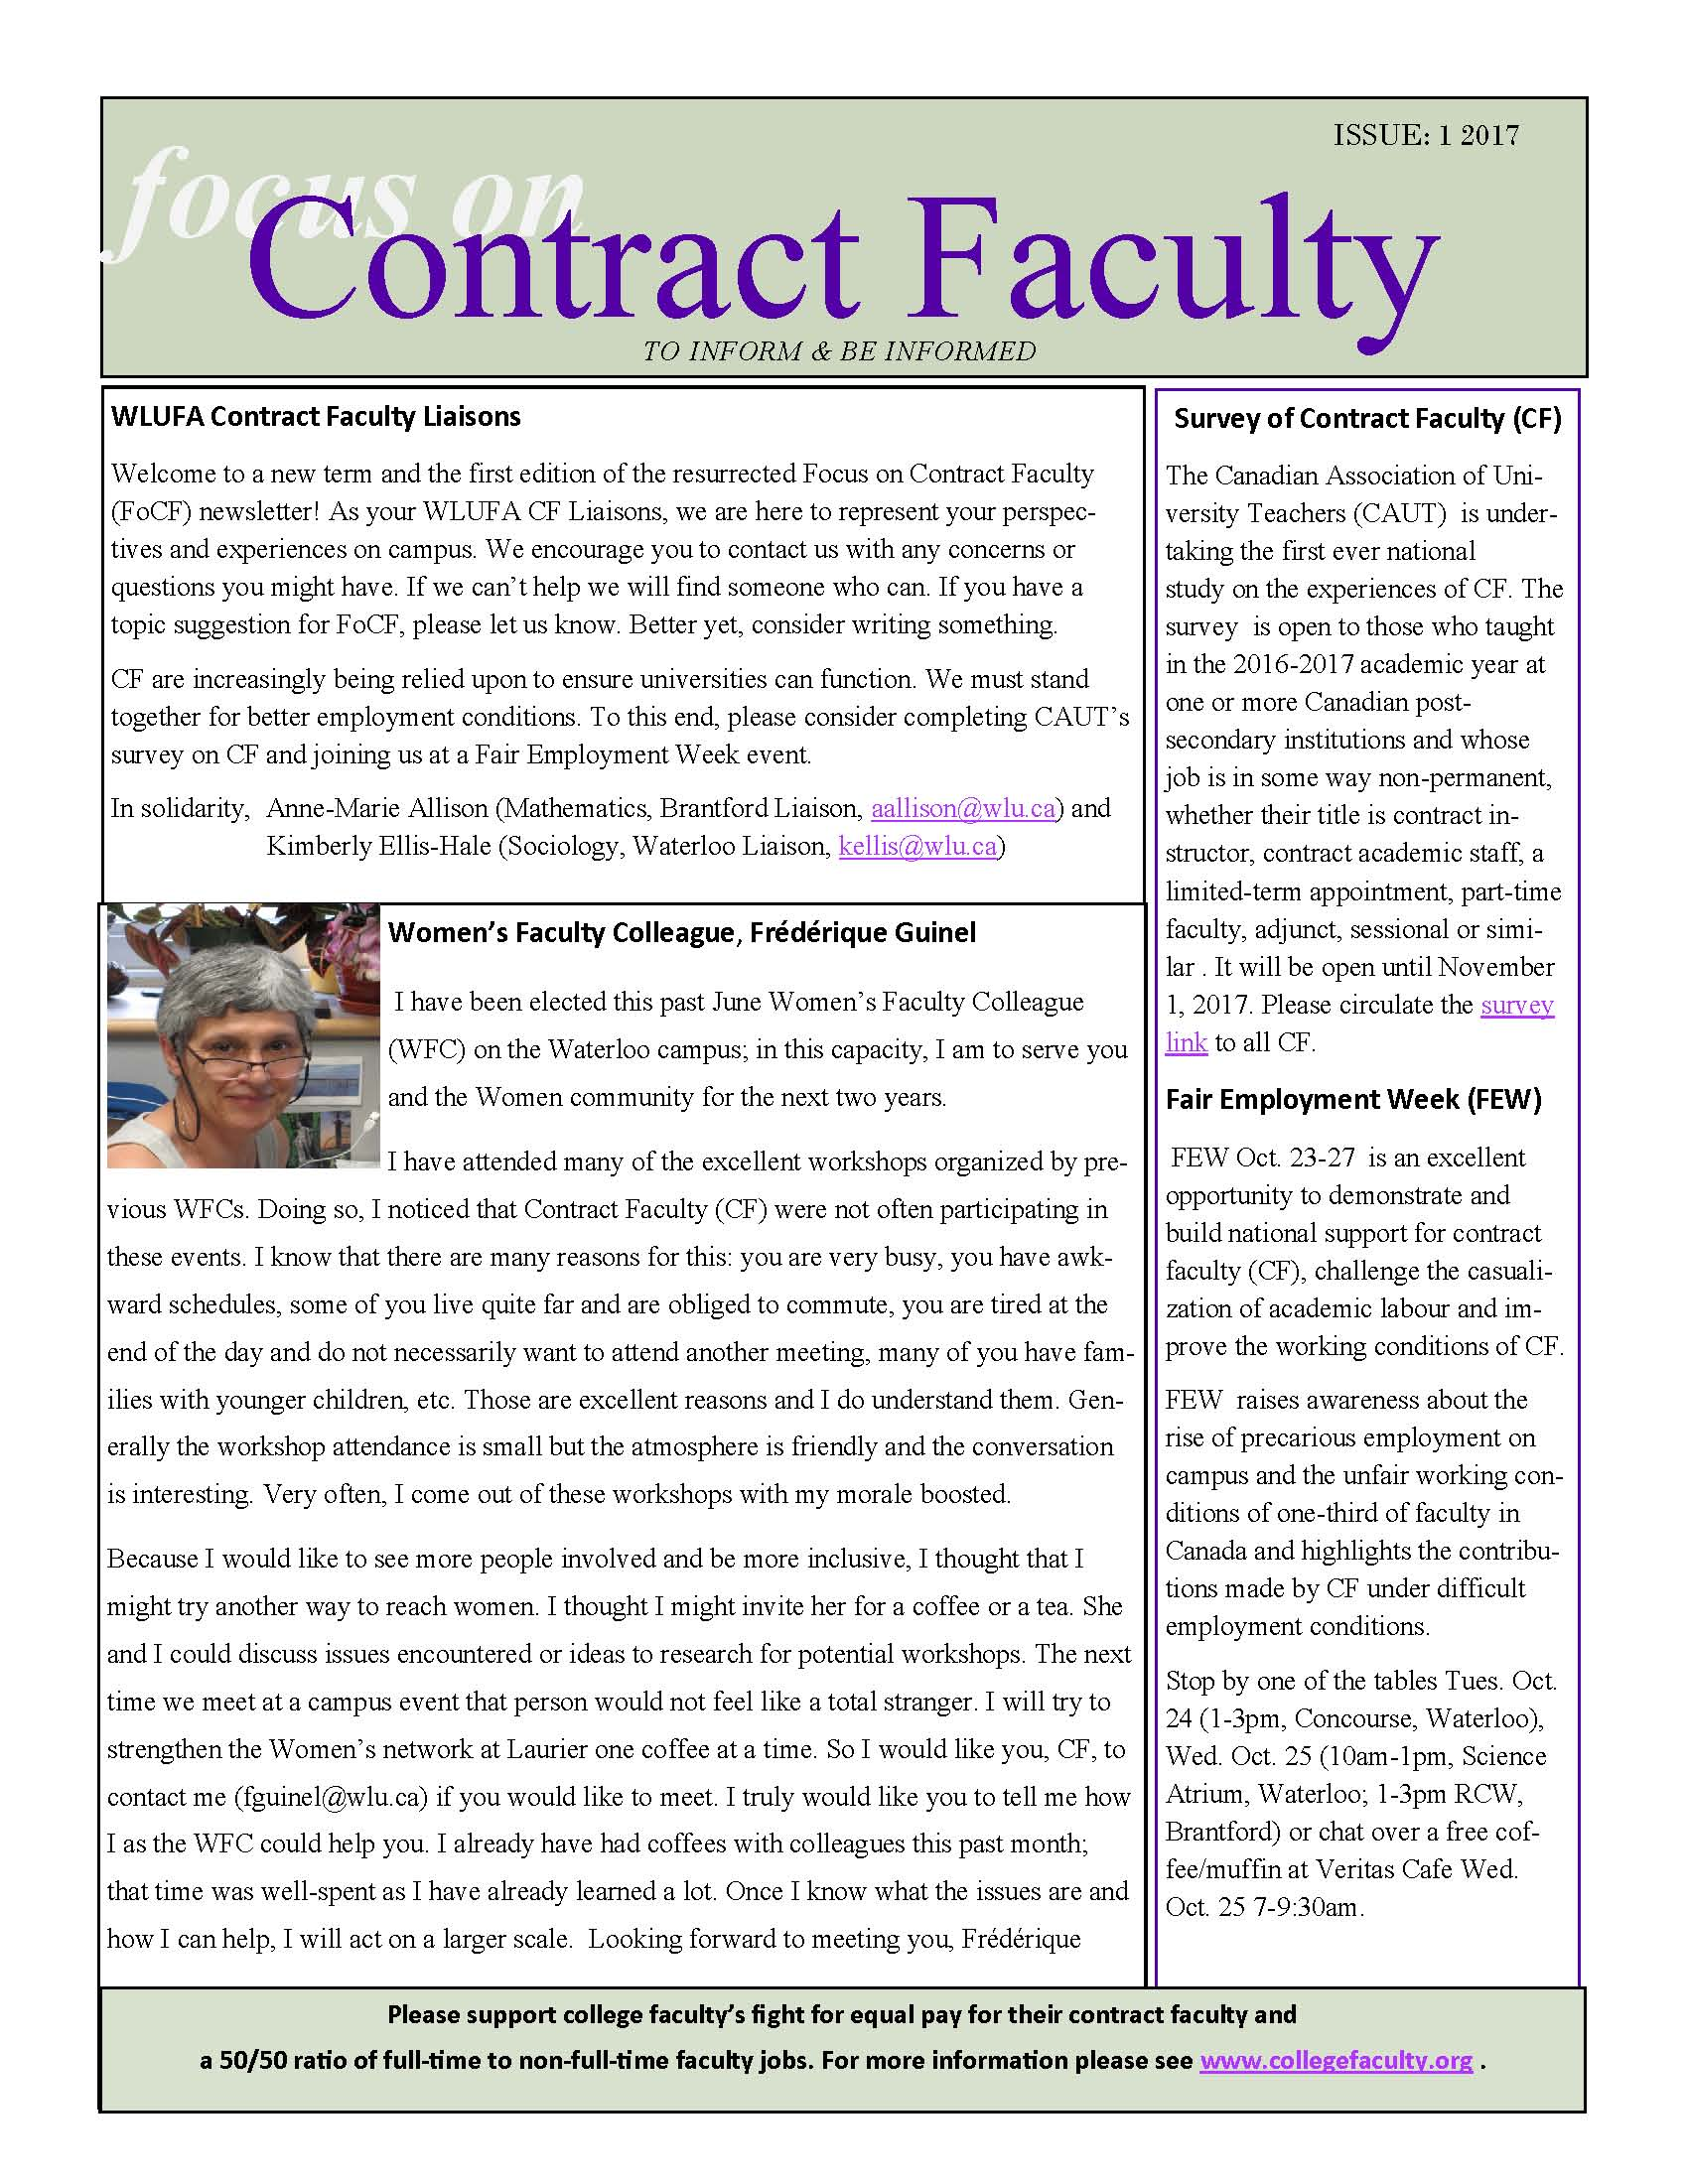 Focus on Contract Faculty Issue 1 2017